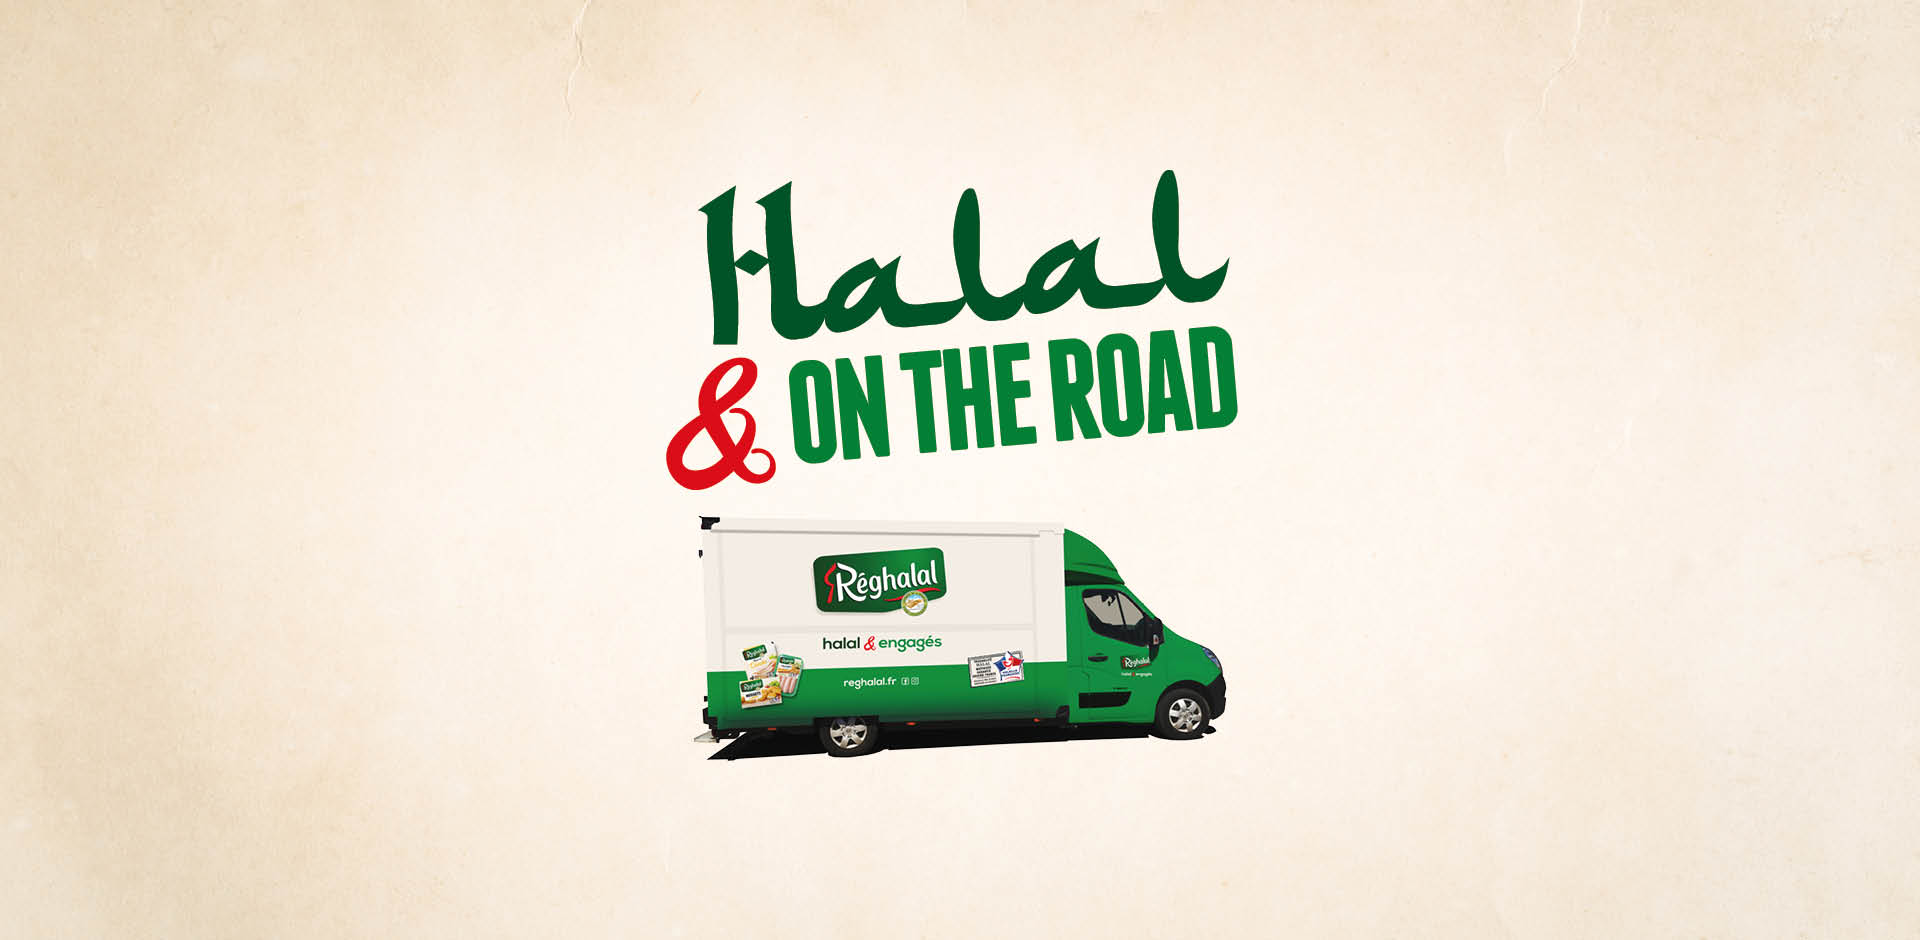 Halal on the road, reghalal